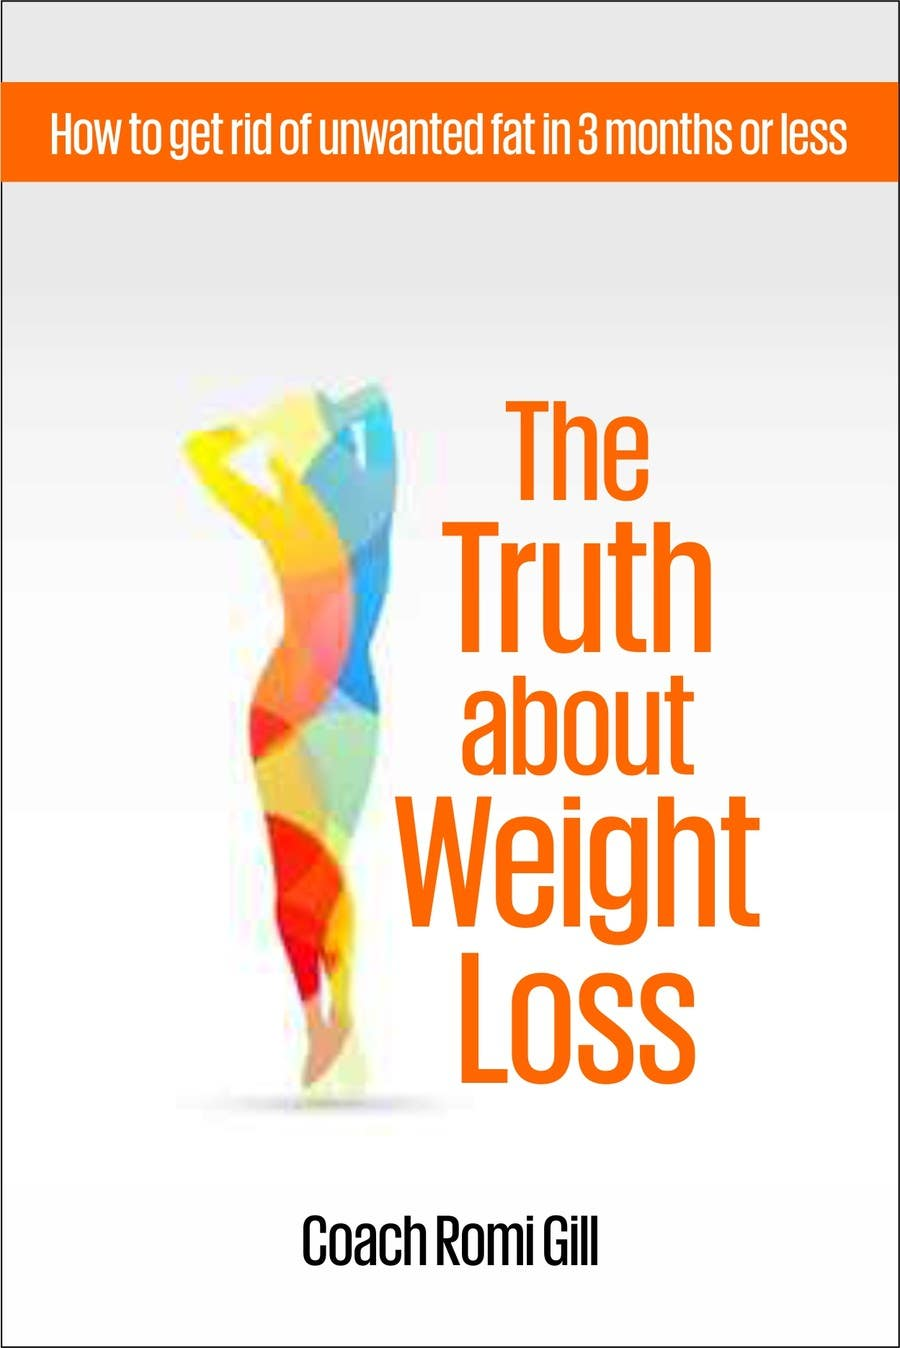 The weight loss book